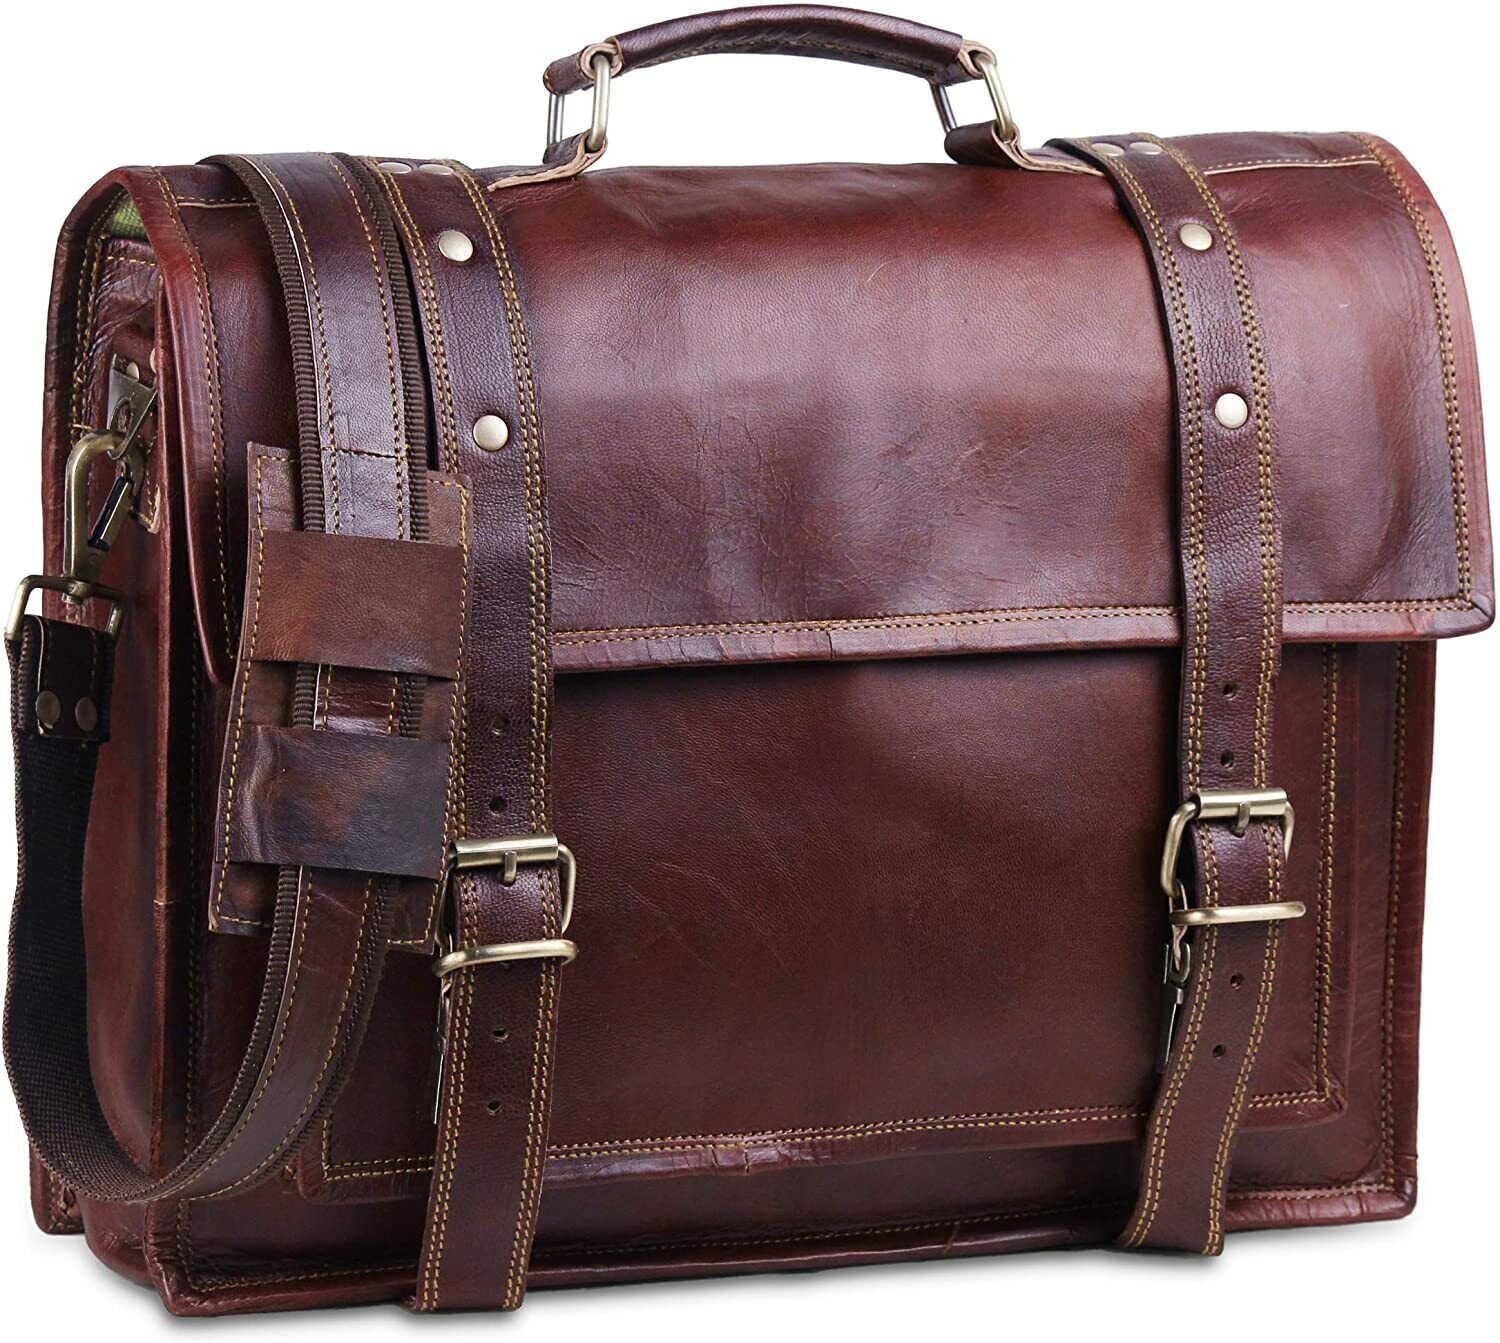 Leather Briefcase,Brown Leather Briefcase Leather bag Mens Briefcase Laptop Bag Shoulder Bag Gift for Him Mens Leather Briefcase